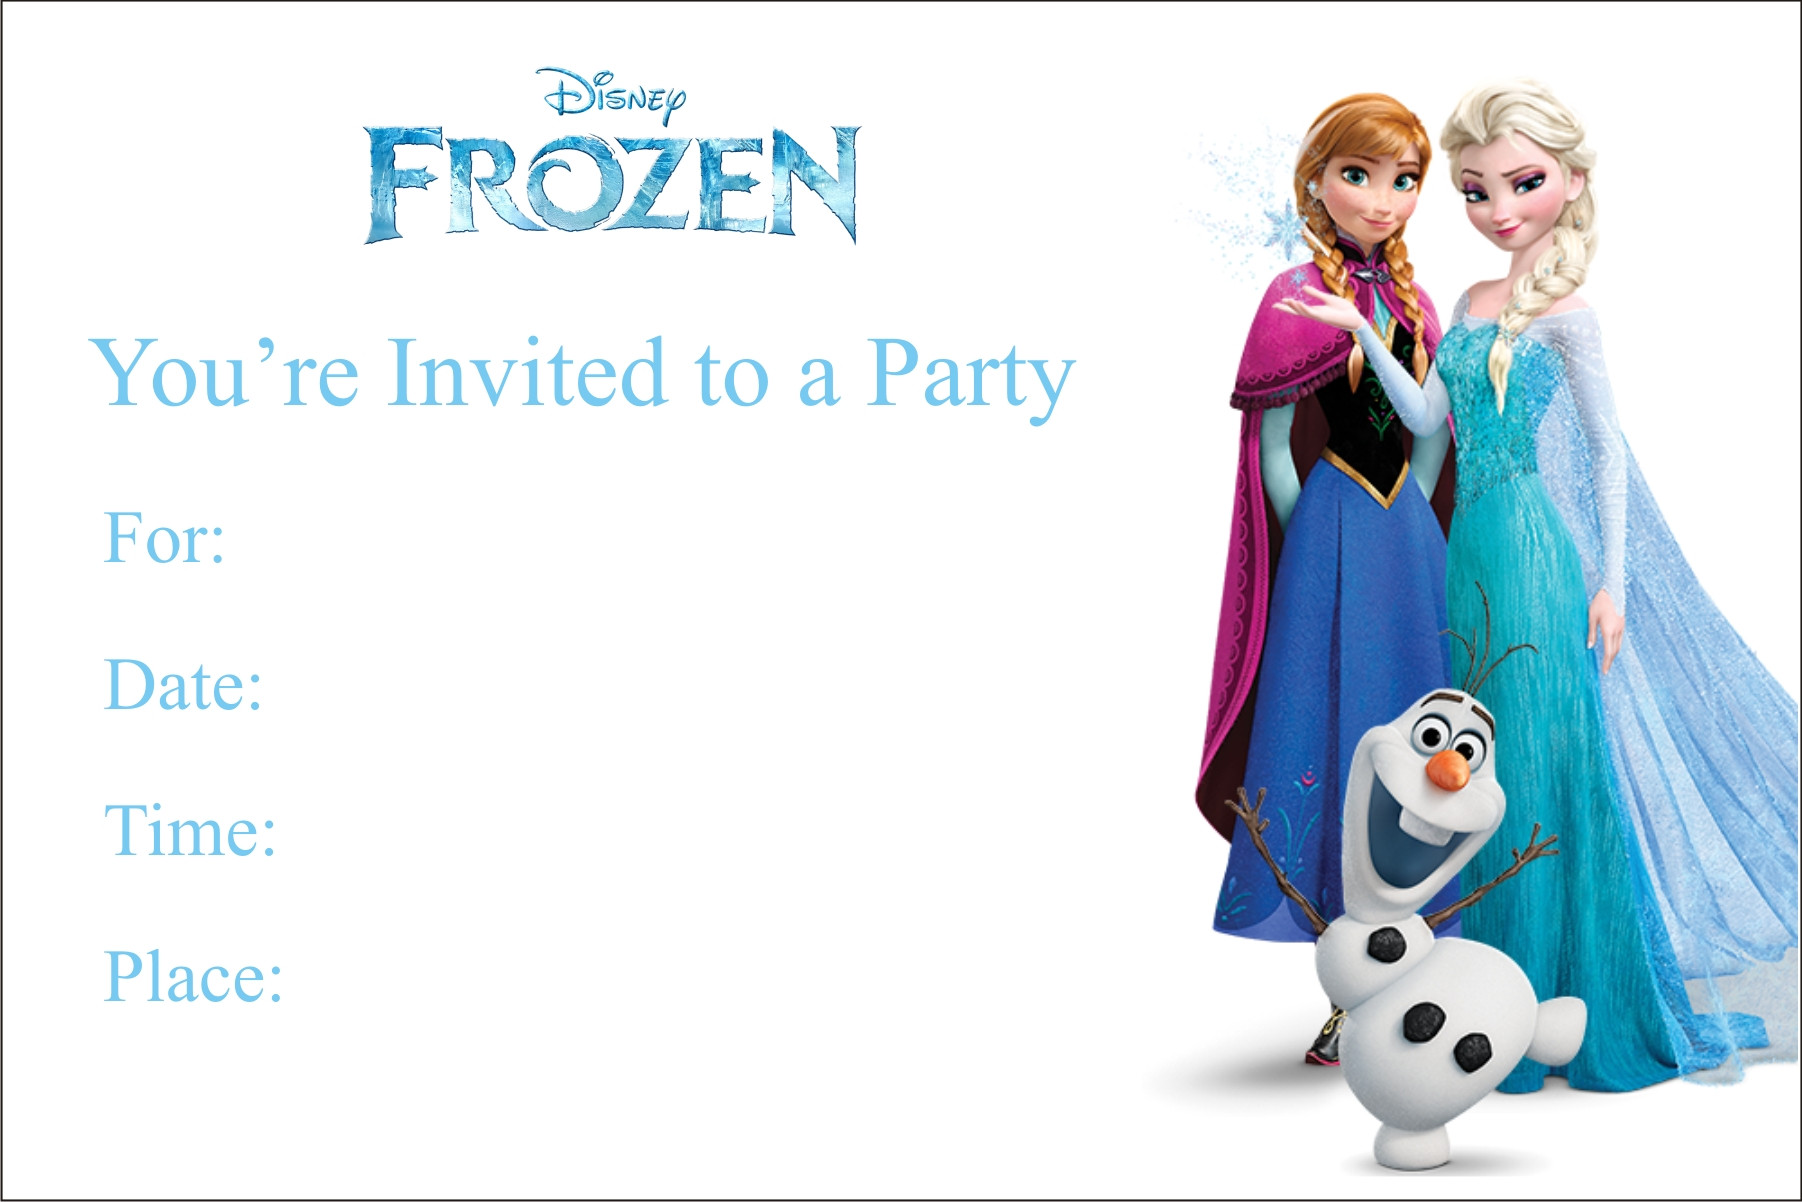 Frozen Printable Invitation Frozen Free Printable Birthday Party Invitation Personalized